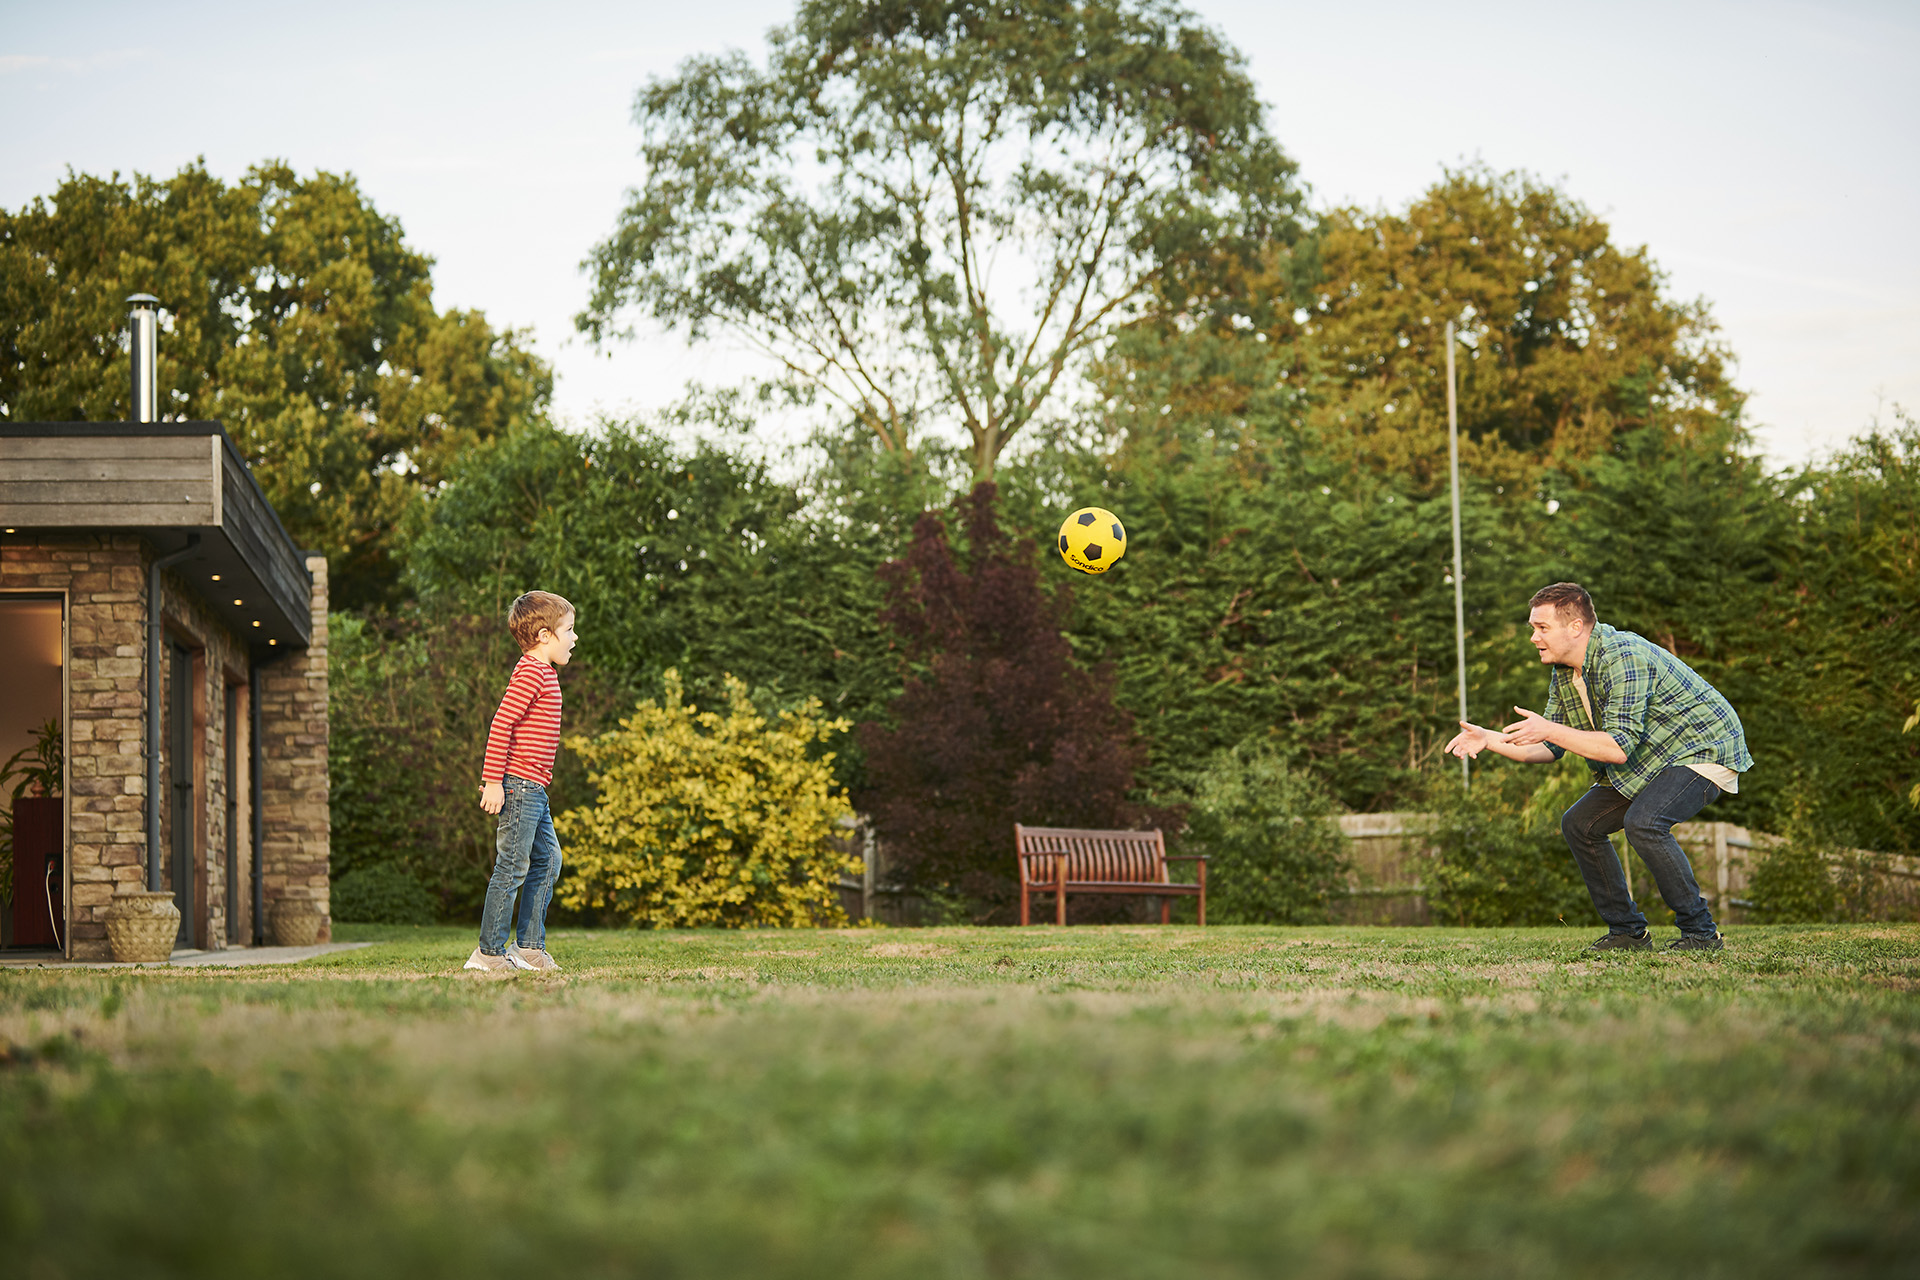 A man and his son playing catch in their garden